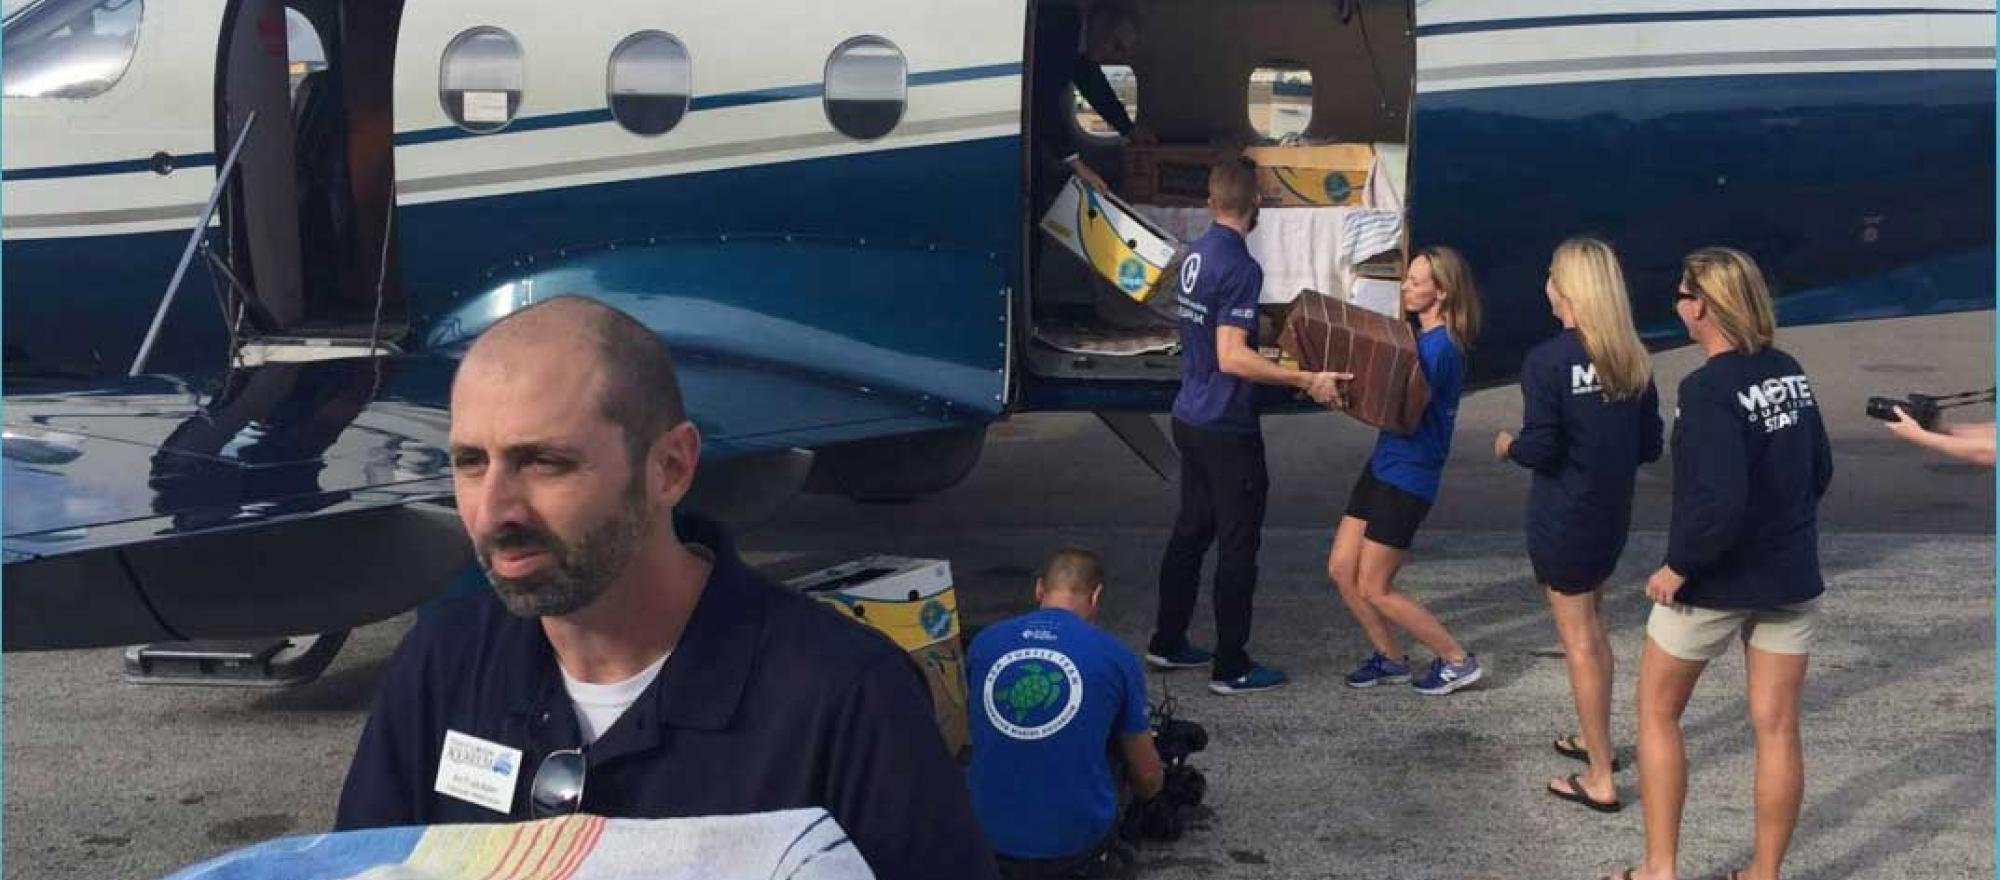 Animal care technicians unloading sea turtles from turboprop